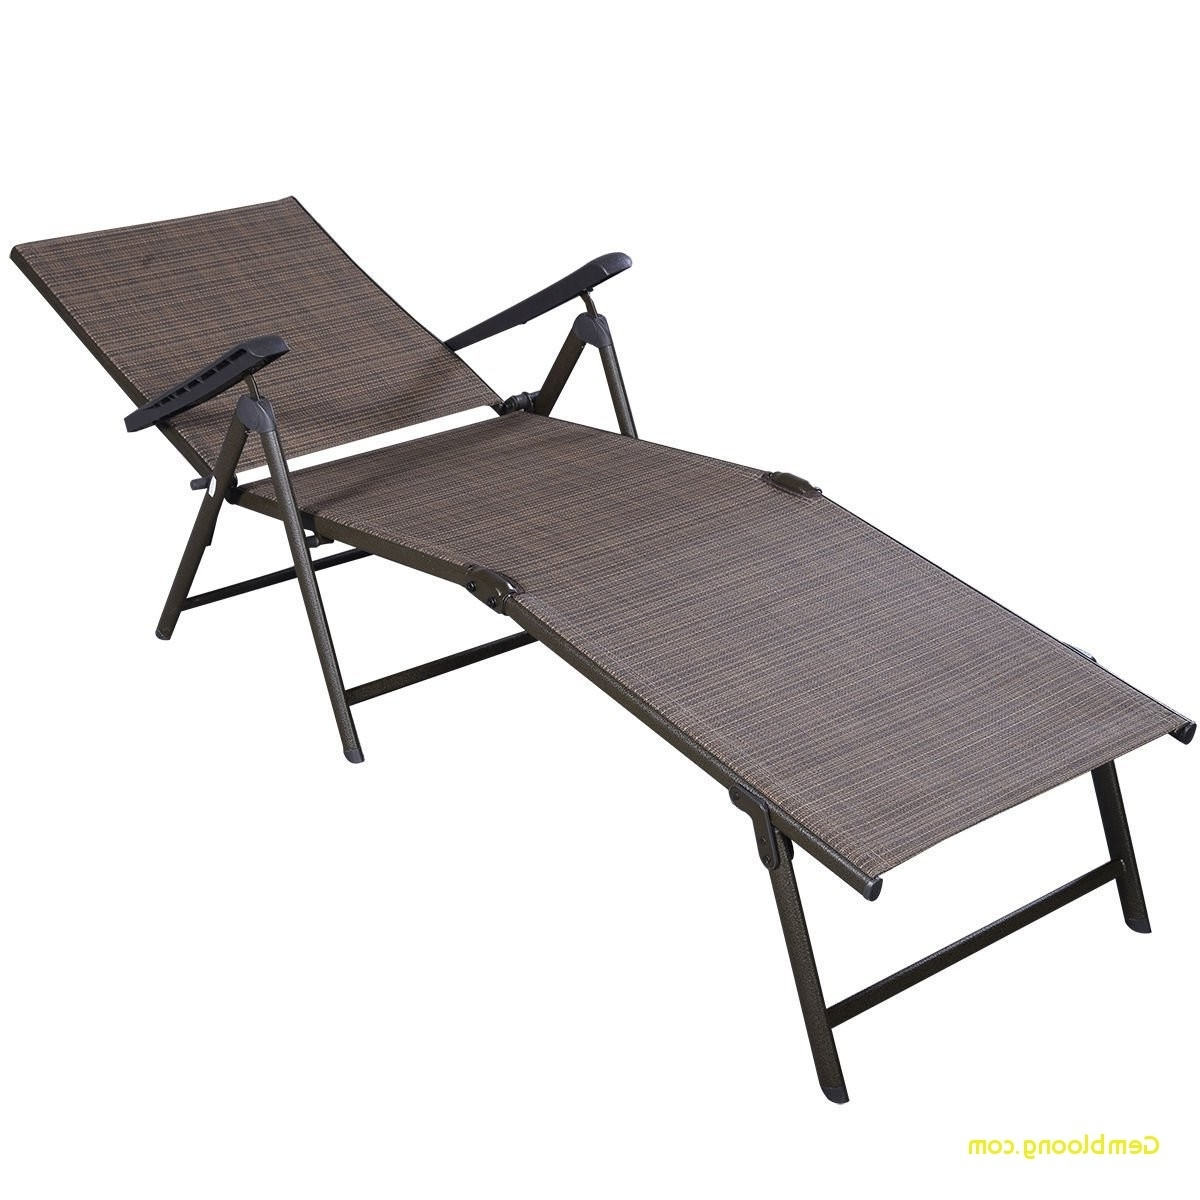 Well Known Adjustable Pool Chaise Lounge Chair Recliners Intended For Chaise Patio Awesome Amazon Giantex Adjustable Pool Chaise Lounge (View 2 of 15)